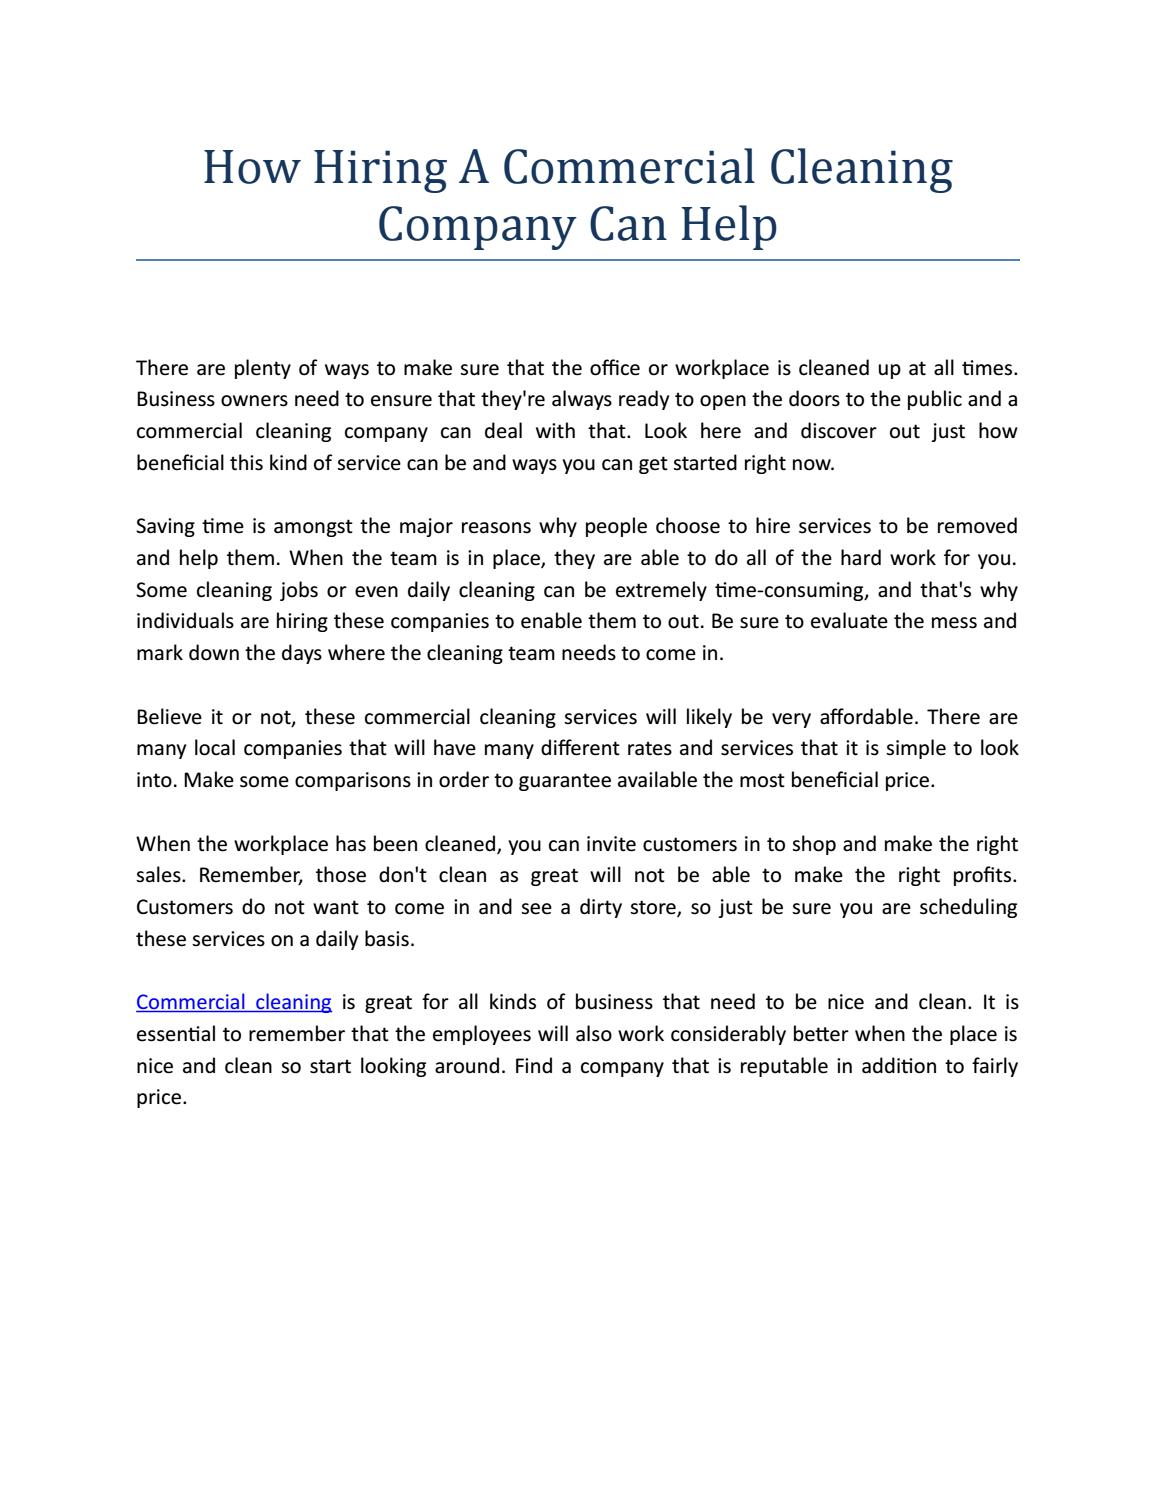 How Hiring A Commercial Cleaning